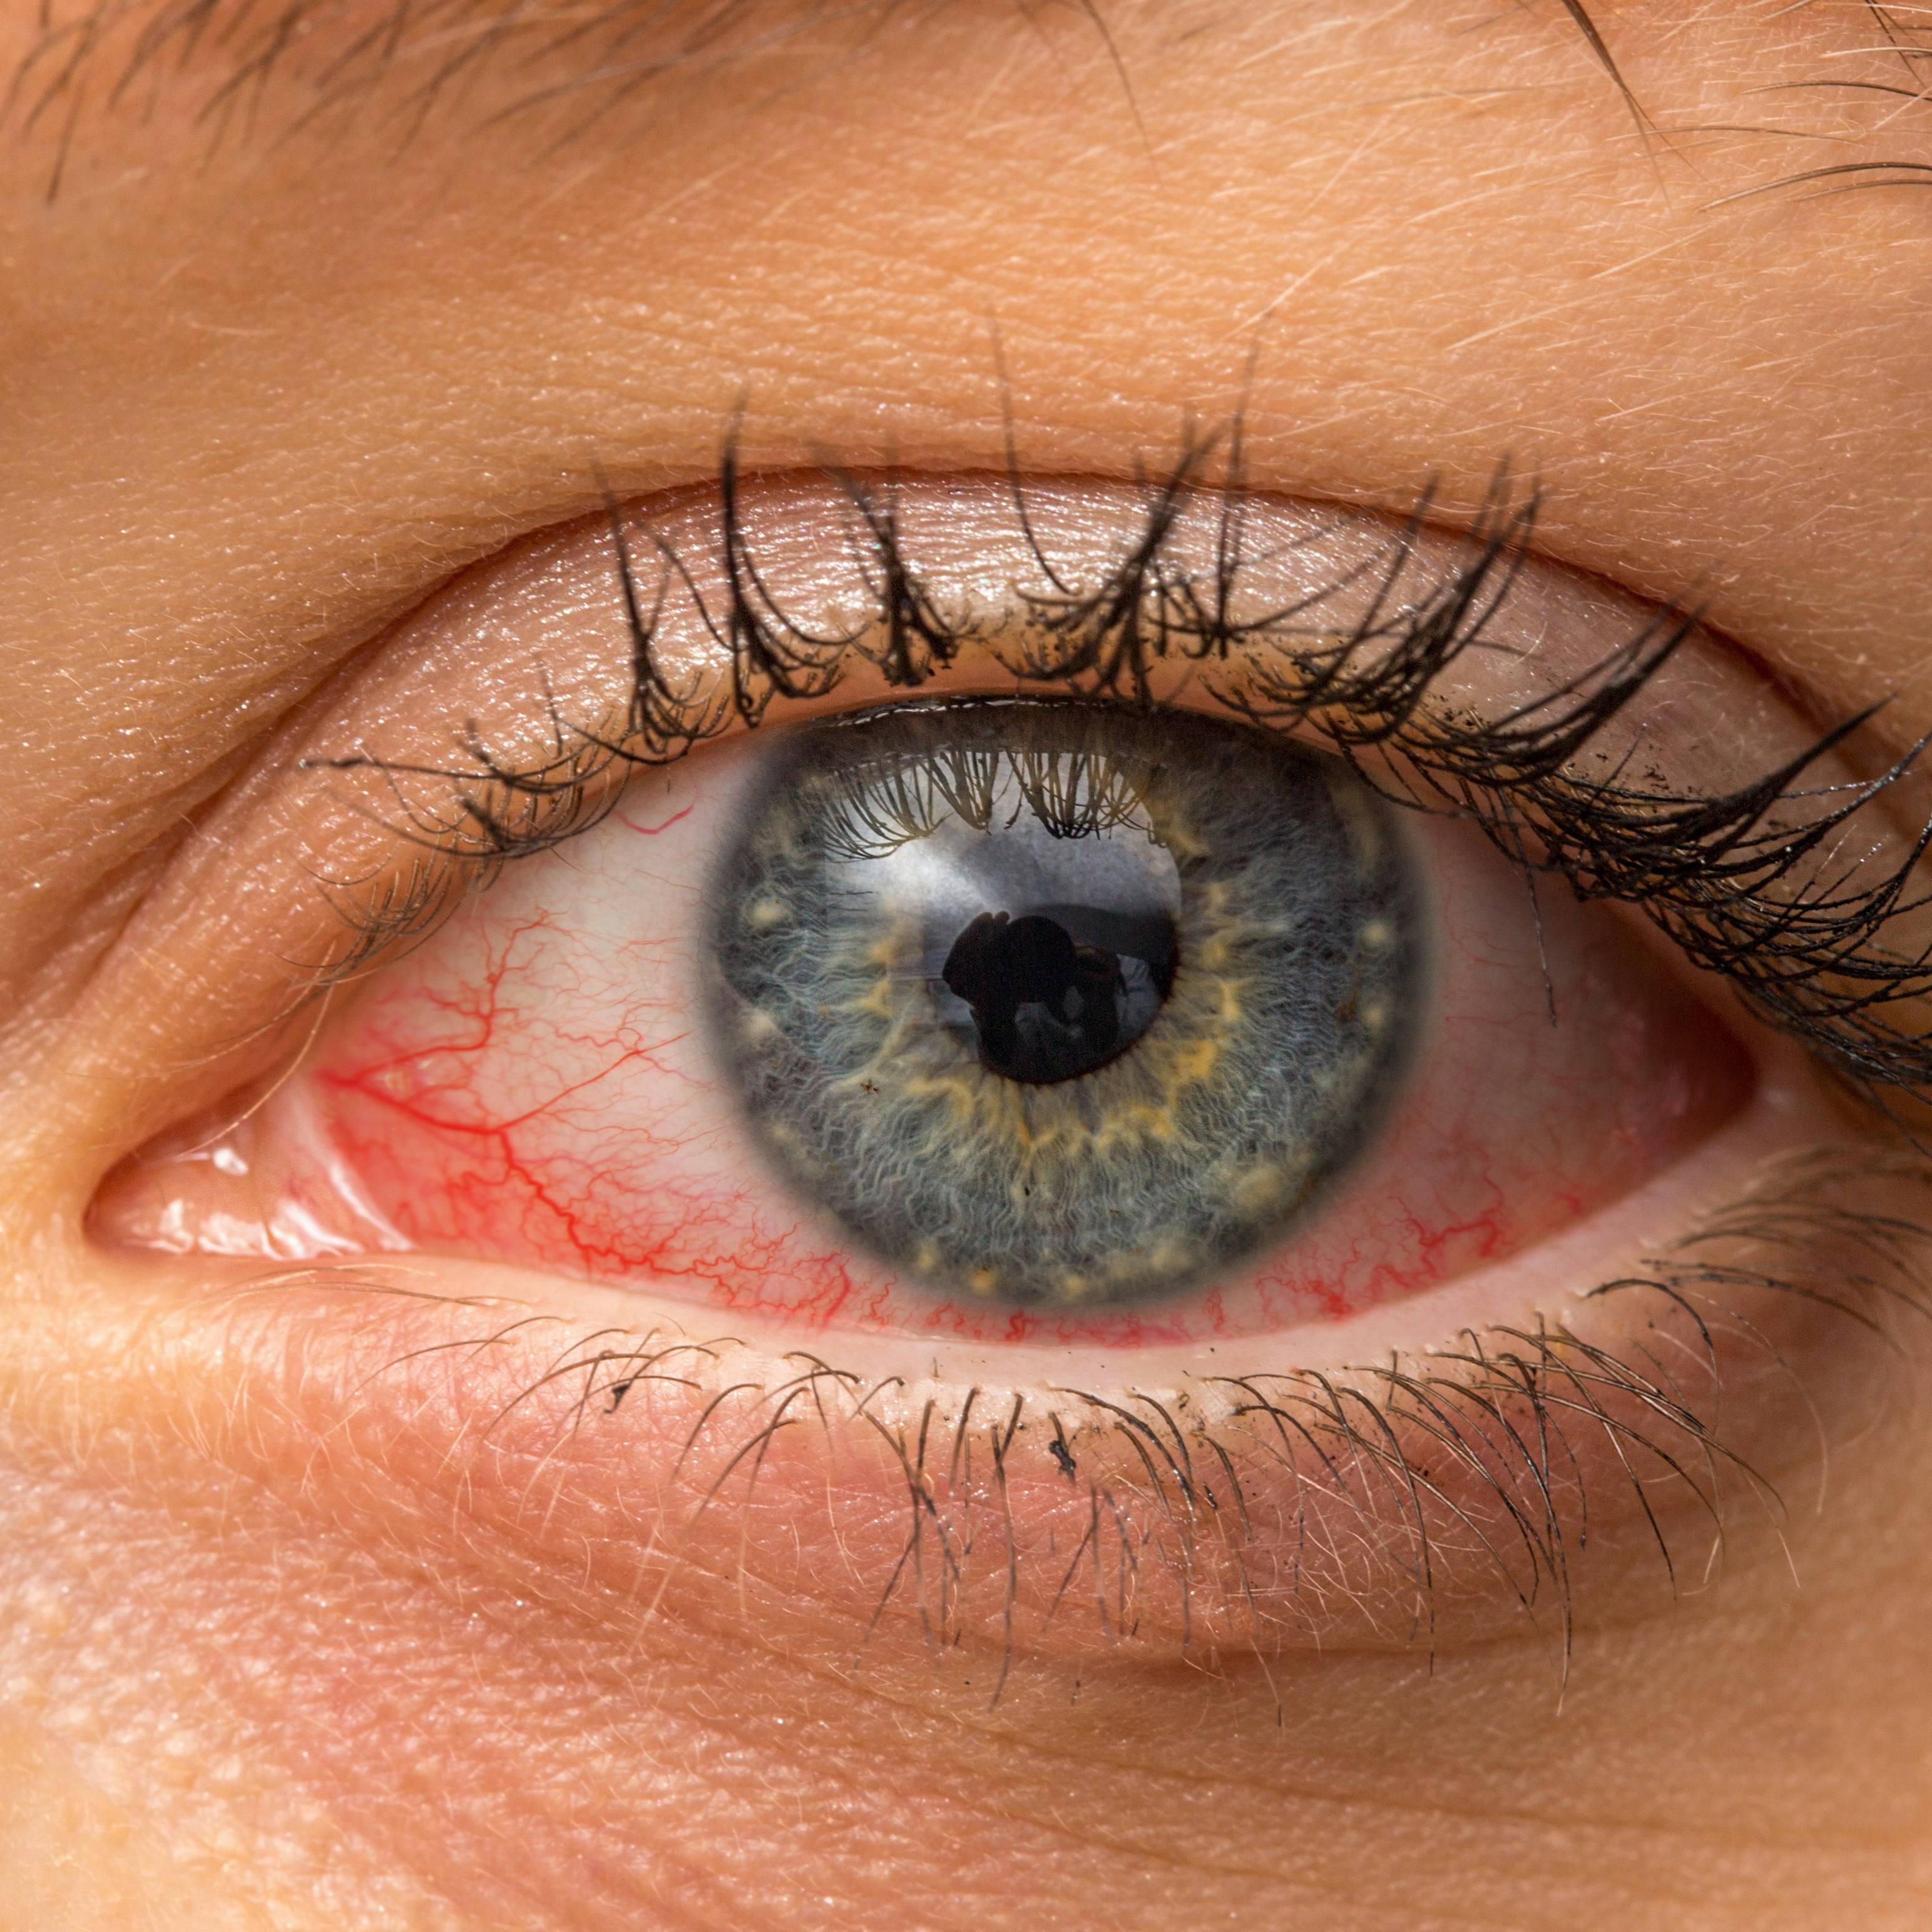 a person with red, sore and itchy eyes, maybe pink eye, conjunctivitis